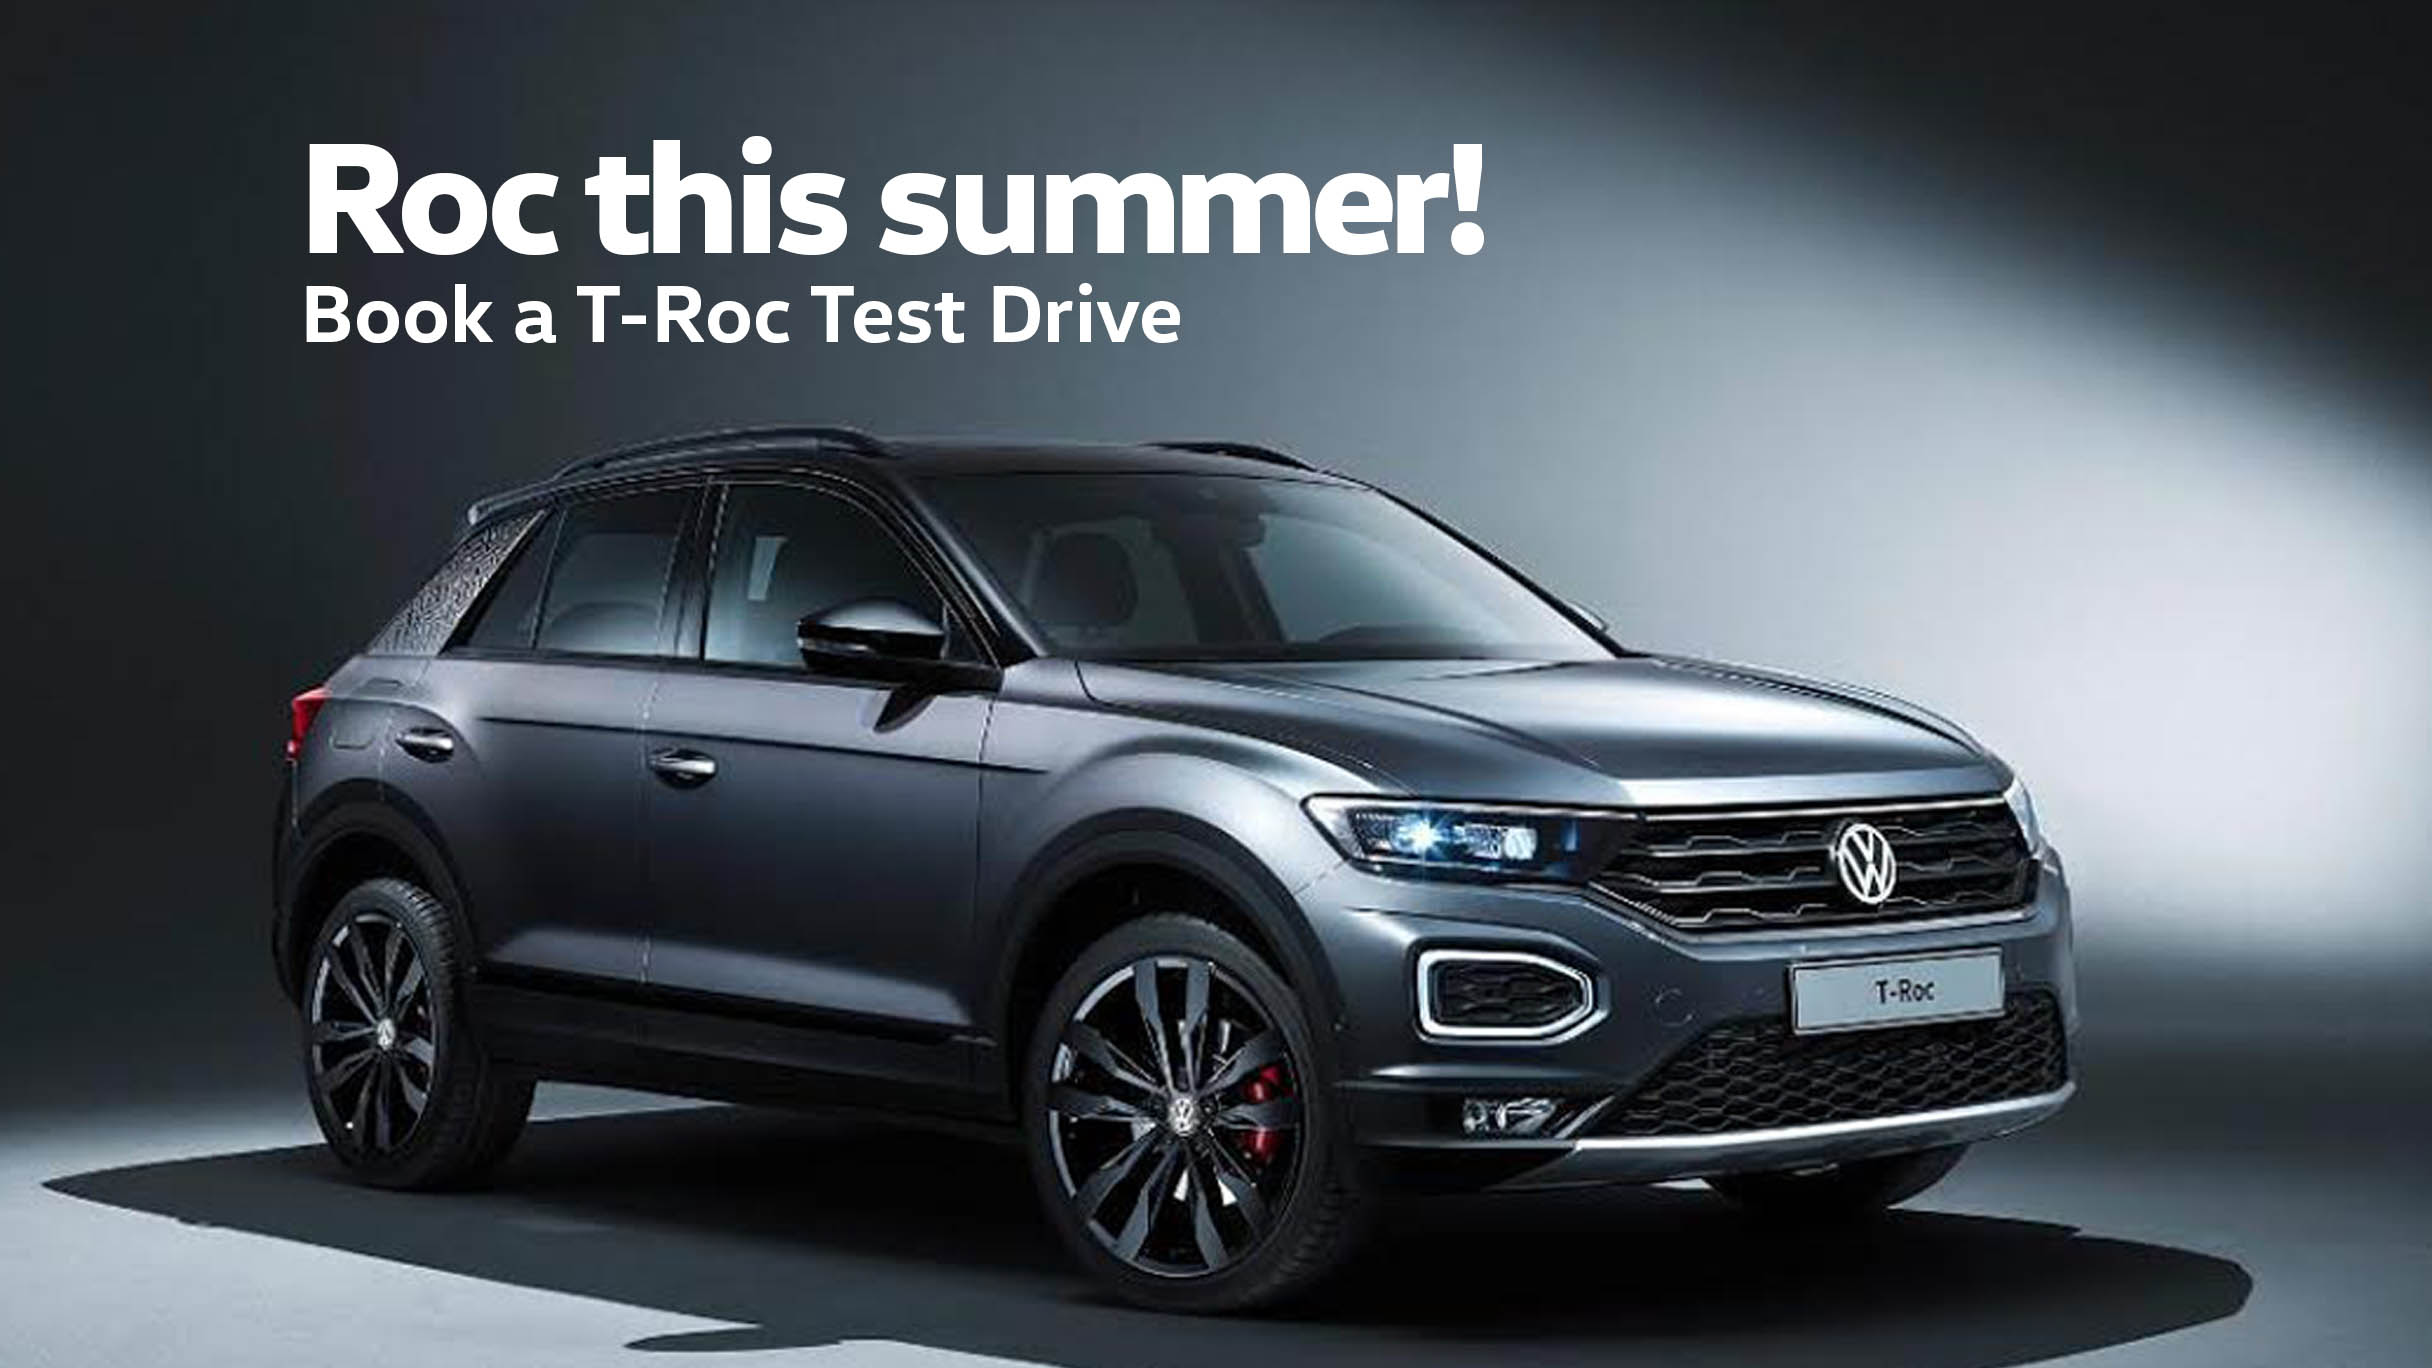 Test drive the T-Roc SUV at Barons Durban